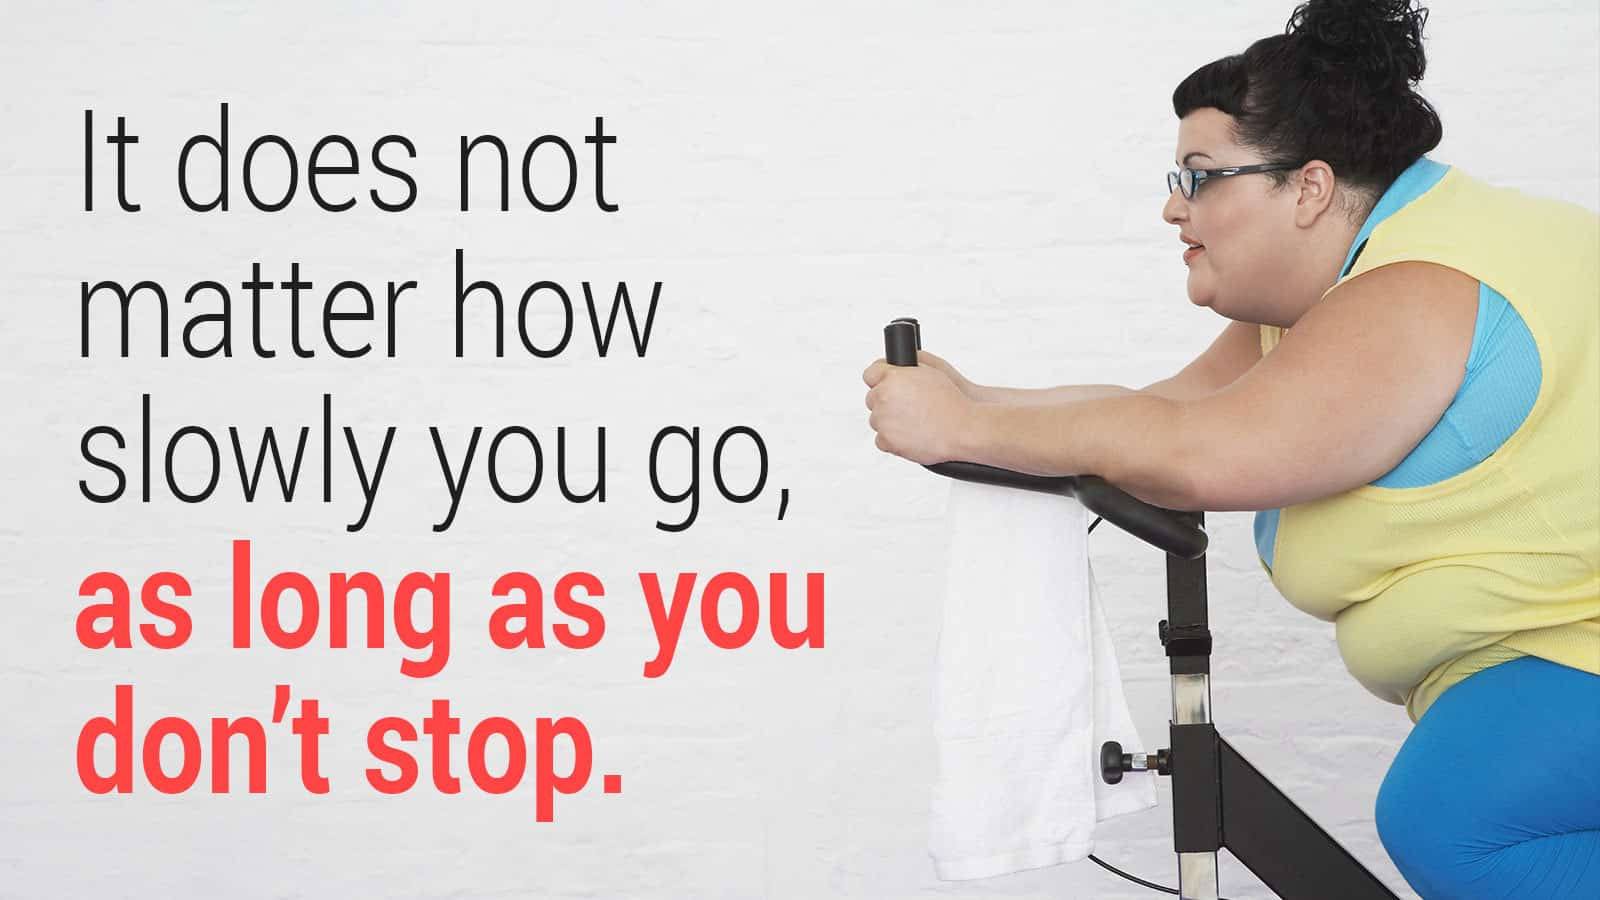 15 Motivational Quotes About Weight Loss To Never Forget